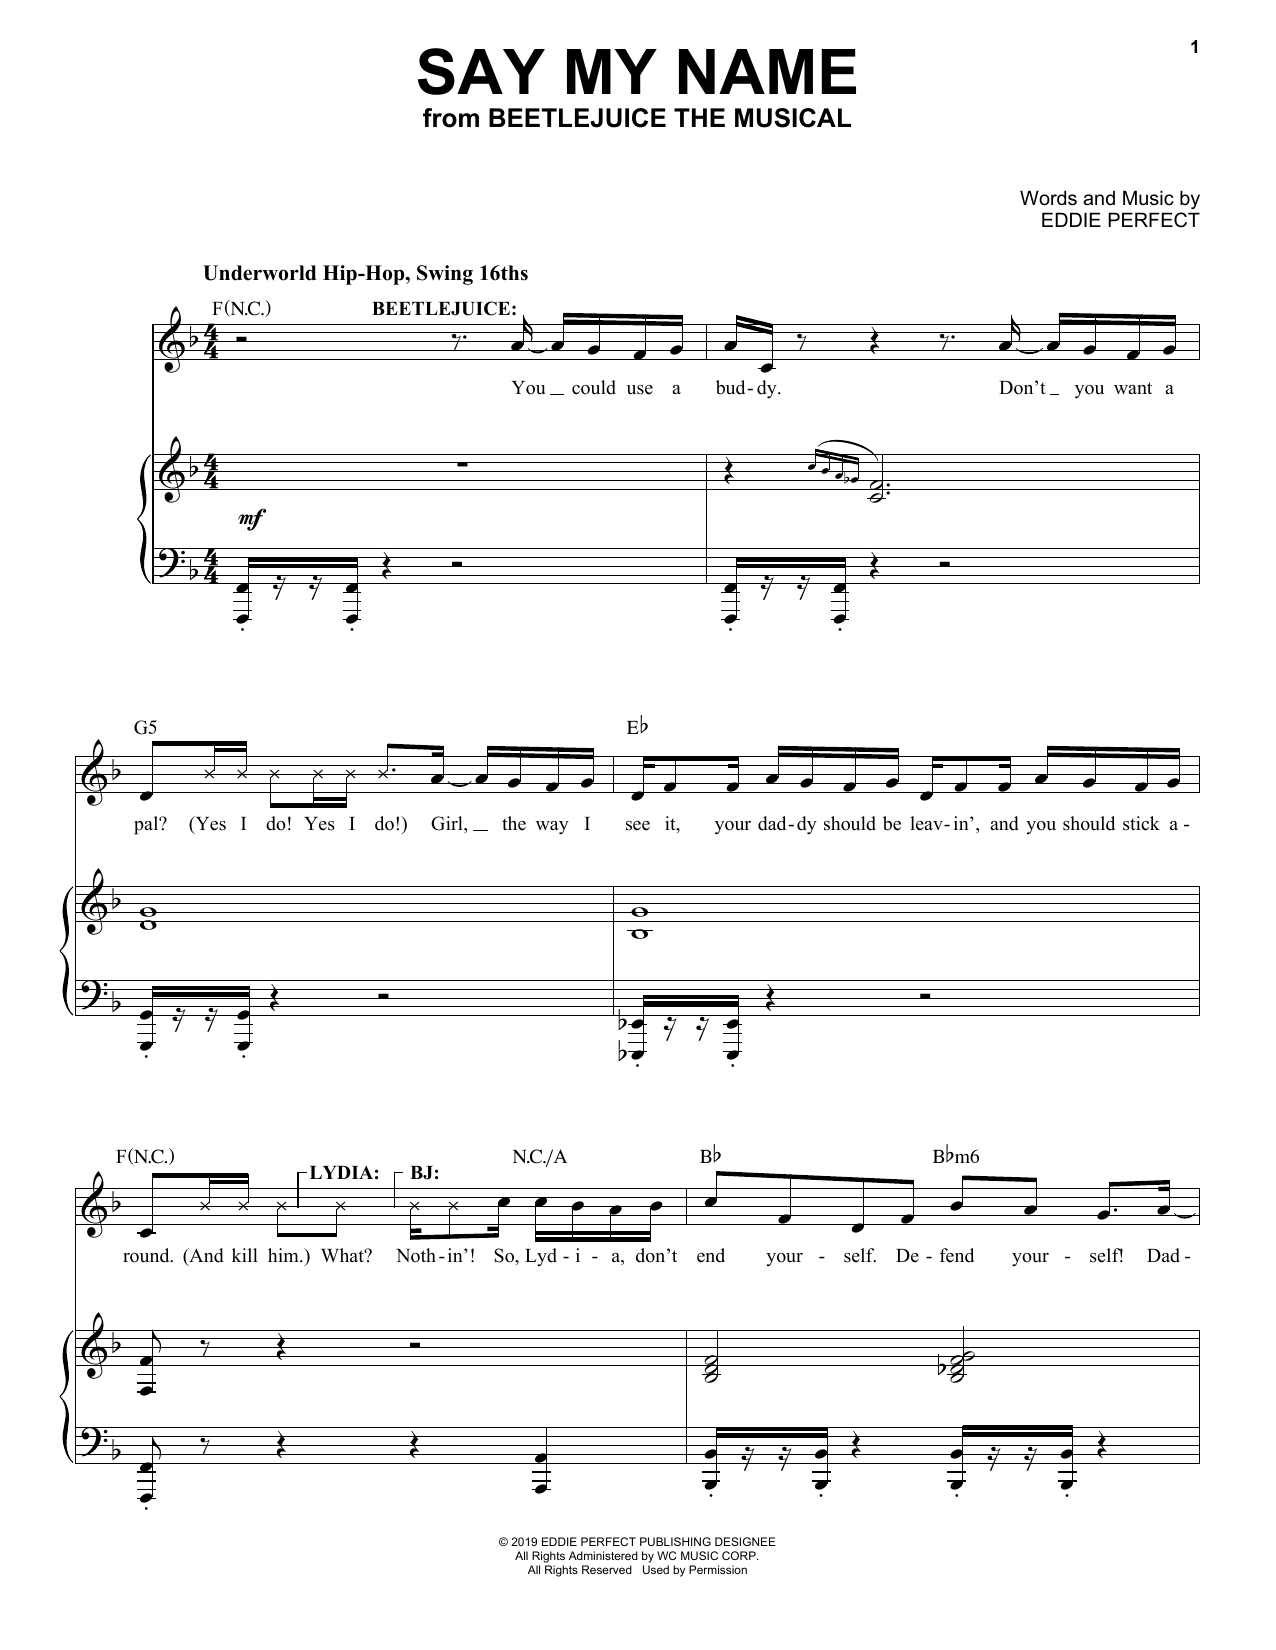 Eddie Perfect Say My Name From Beetlejuice The Musical Sheet Music Pdf Notes Chords Broadway Score Piano Vocal Download Printable Sku 428616